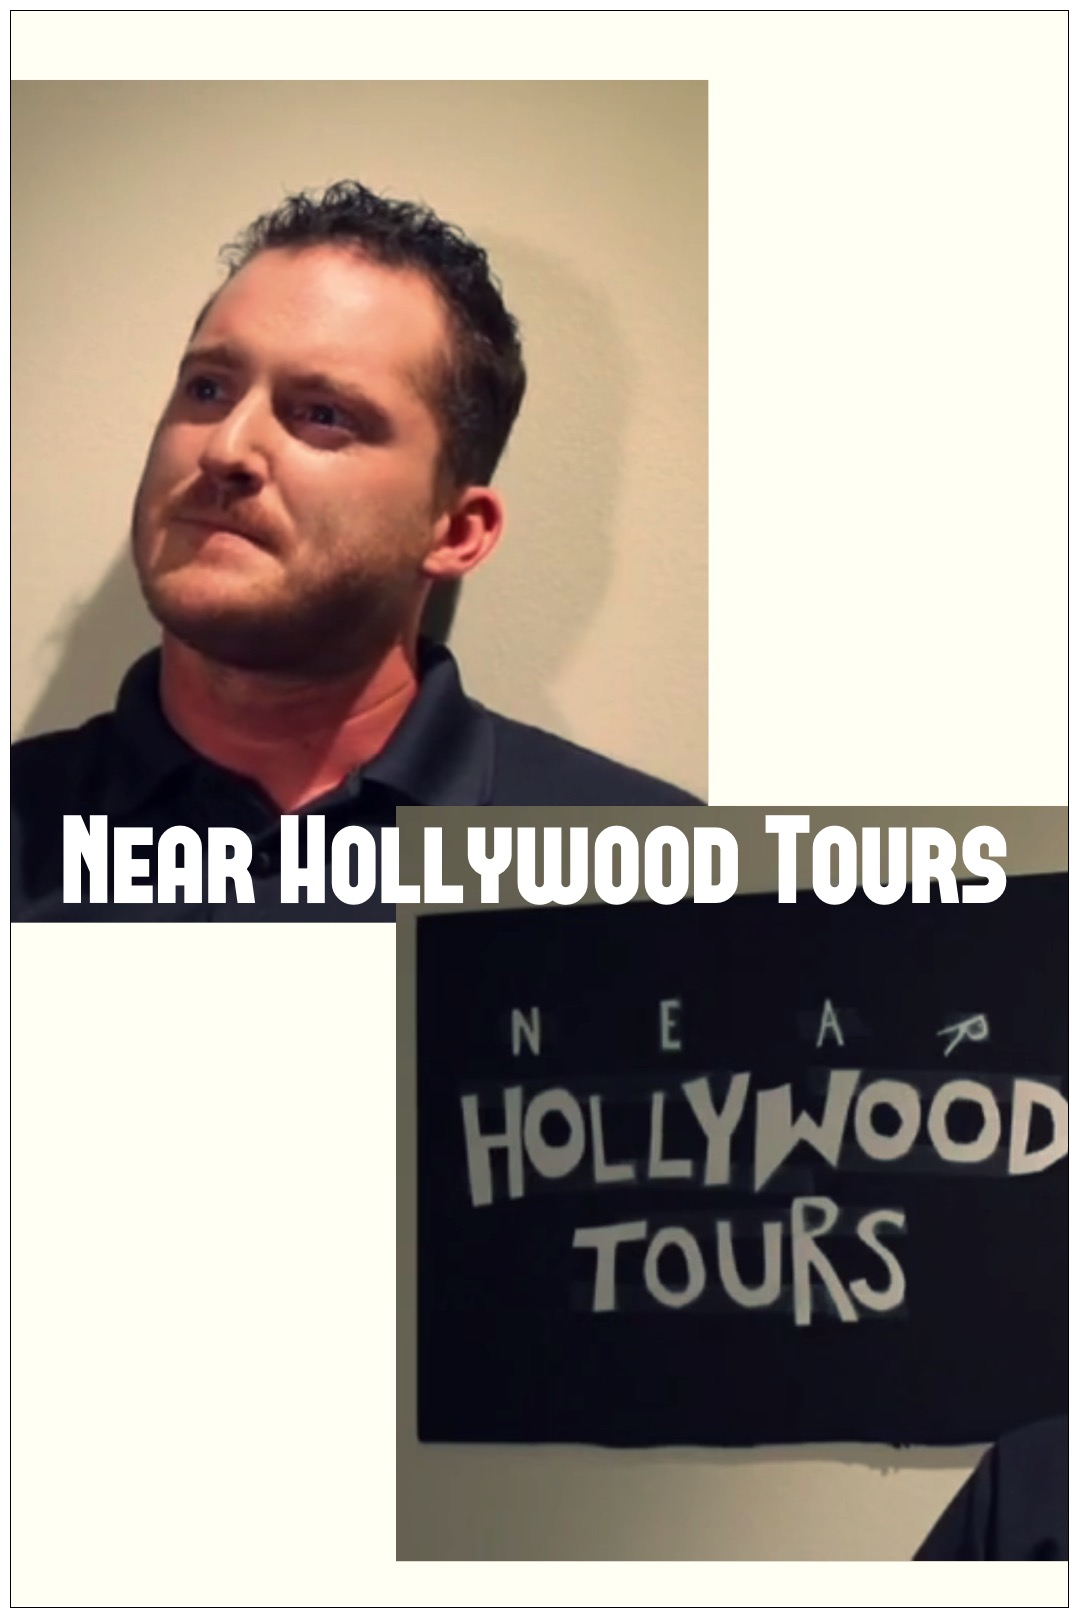 Near Hollywood Tours